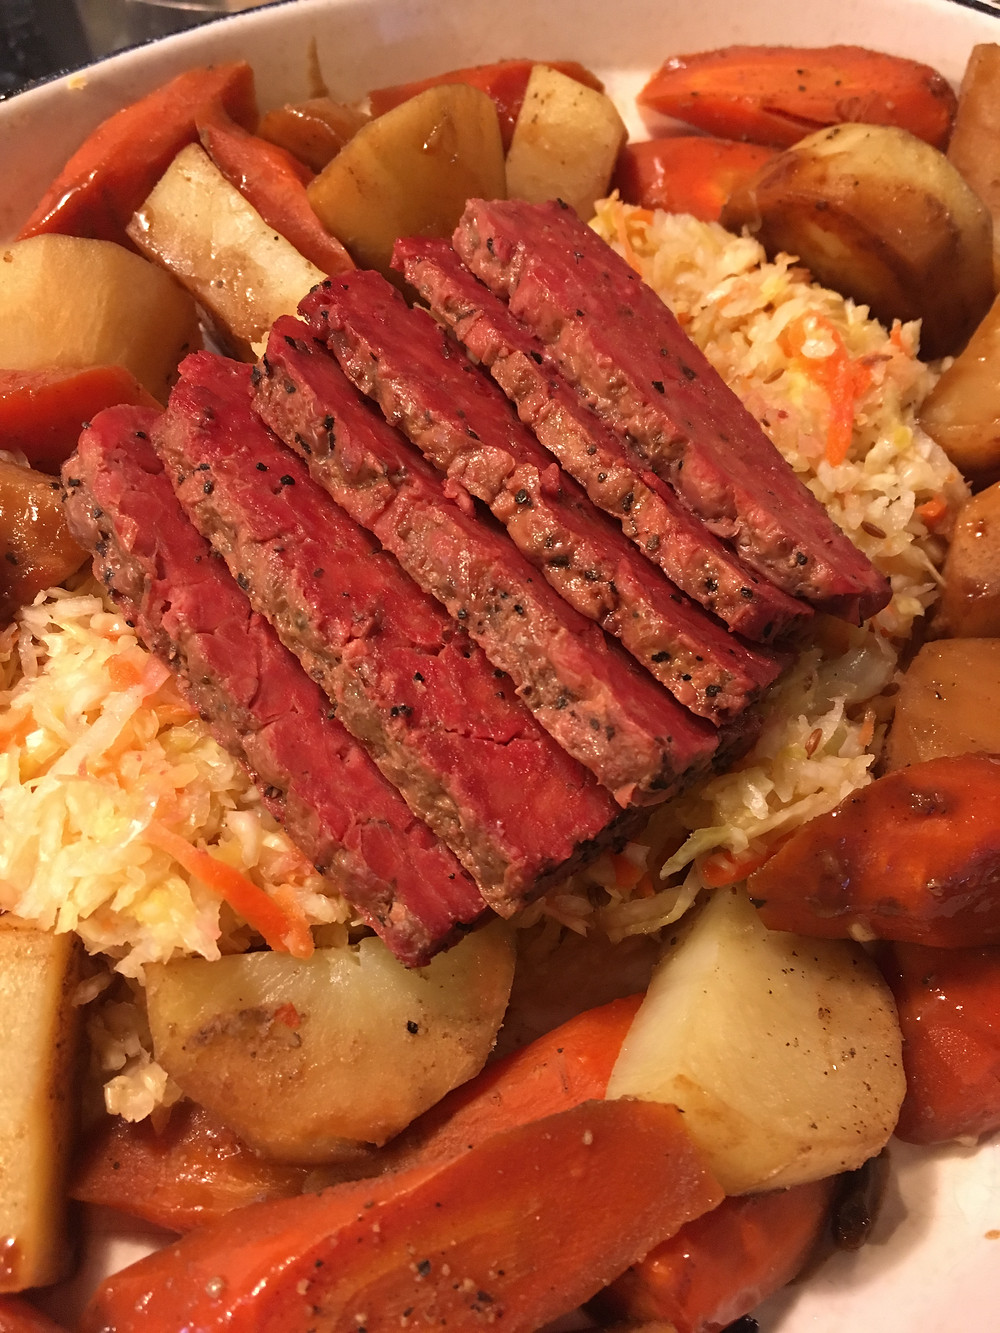 Mock corned beef on a bed of fermented kraut